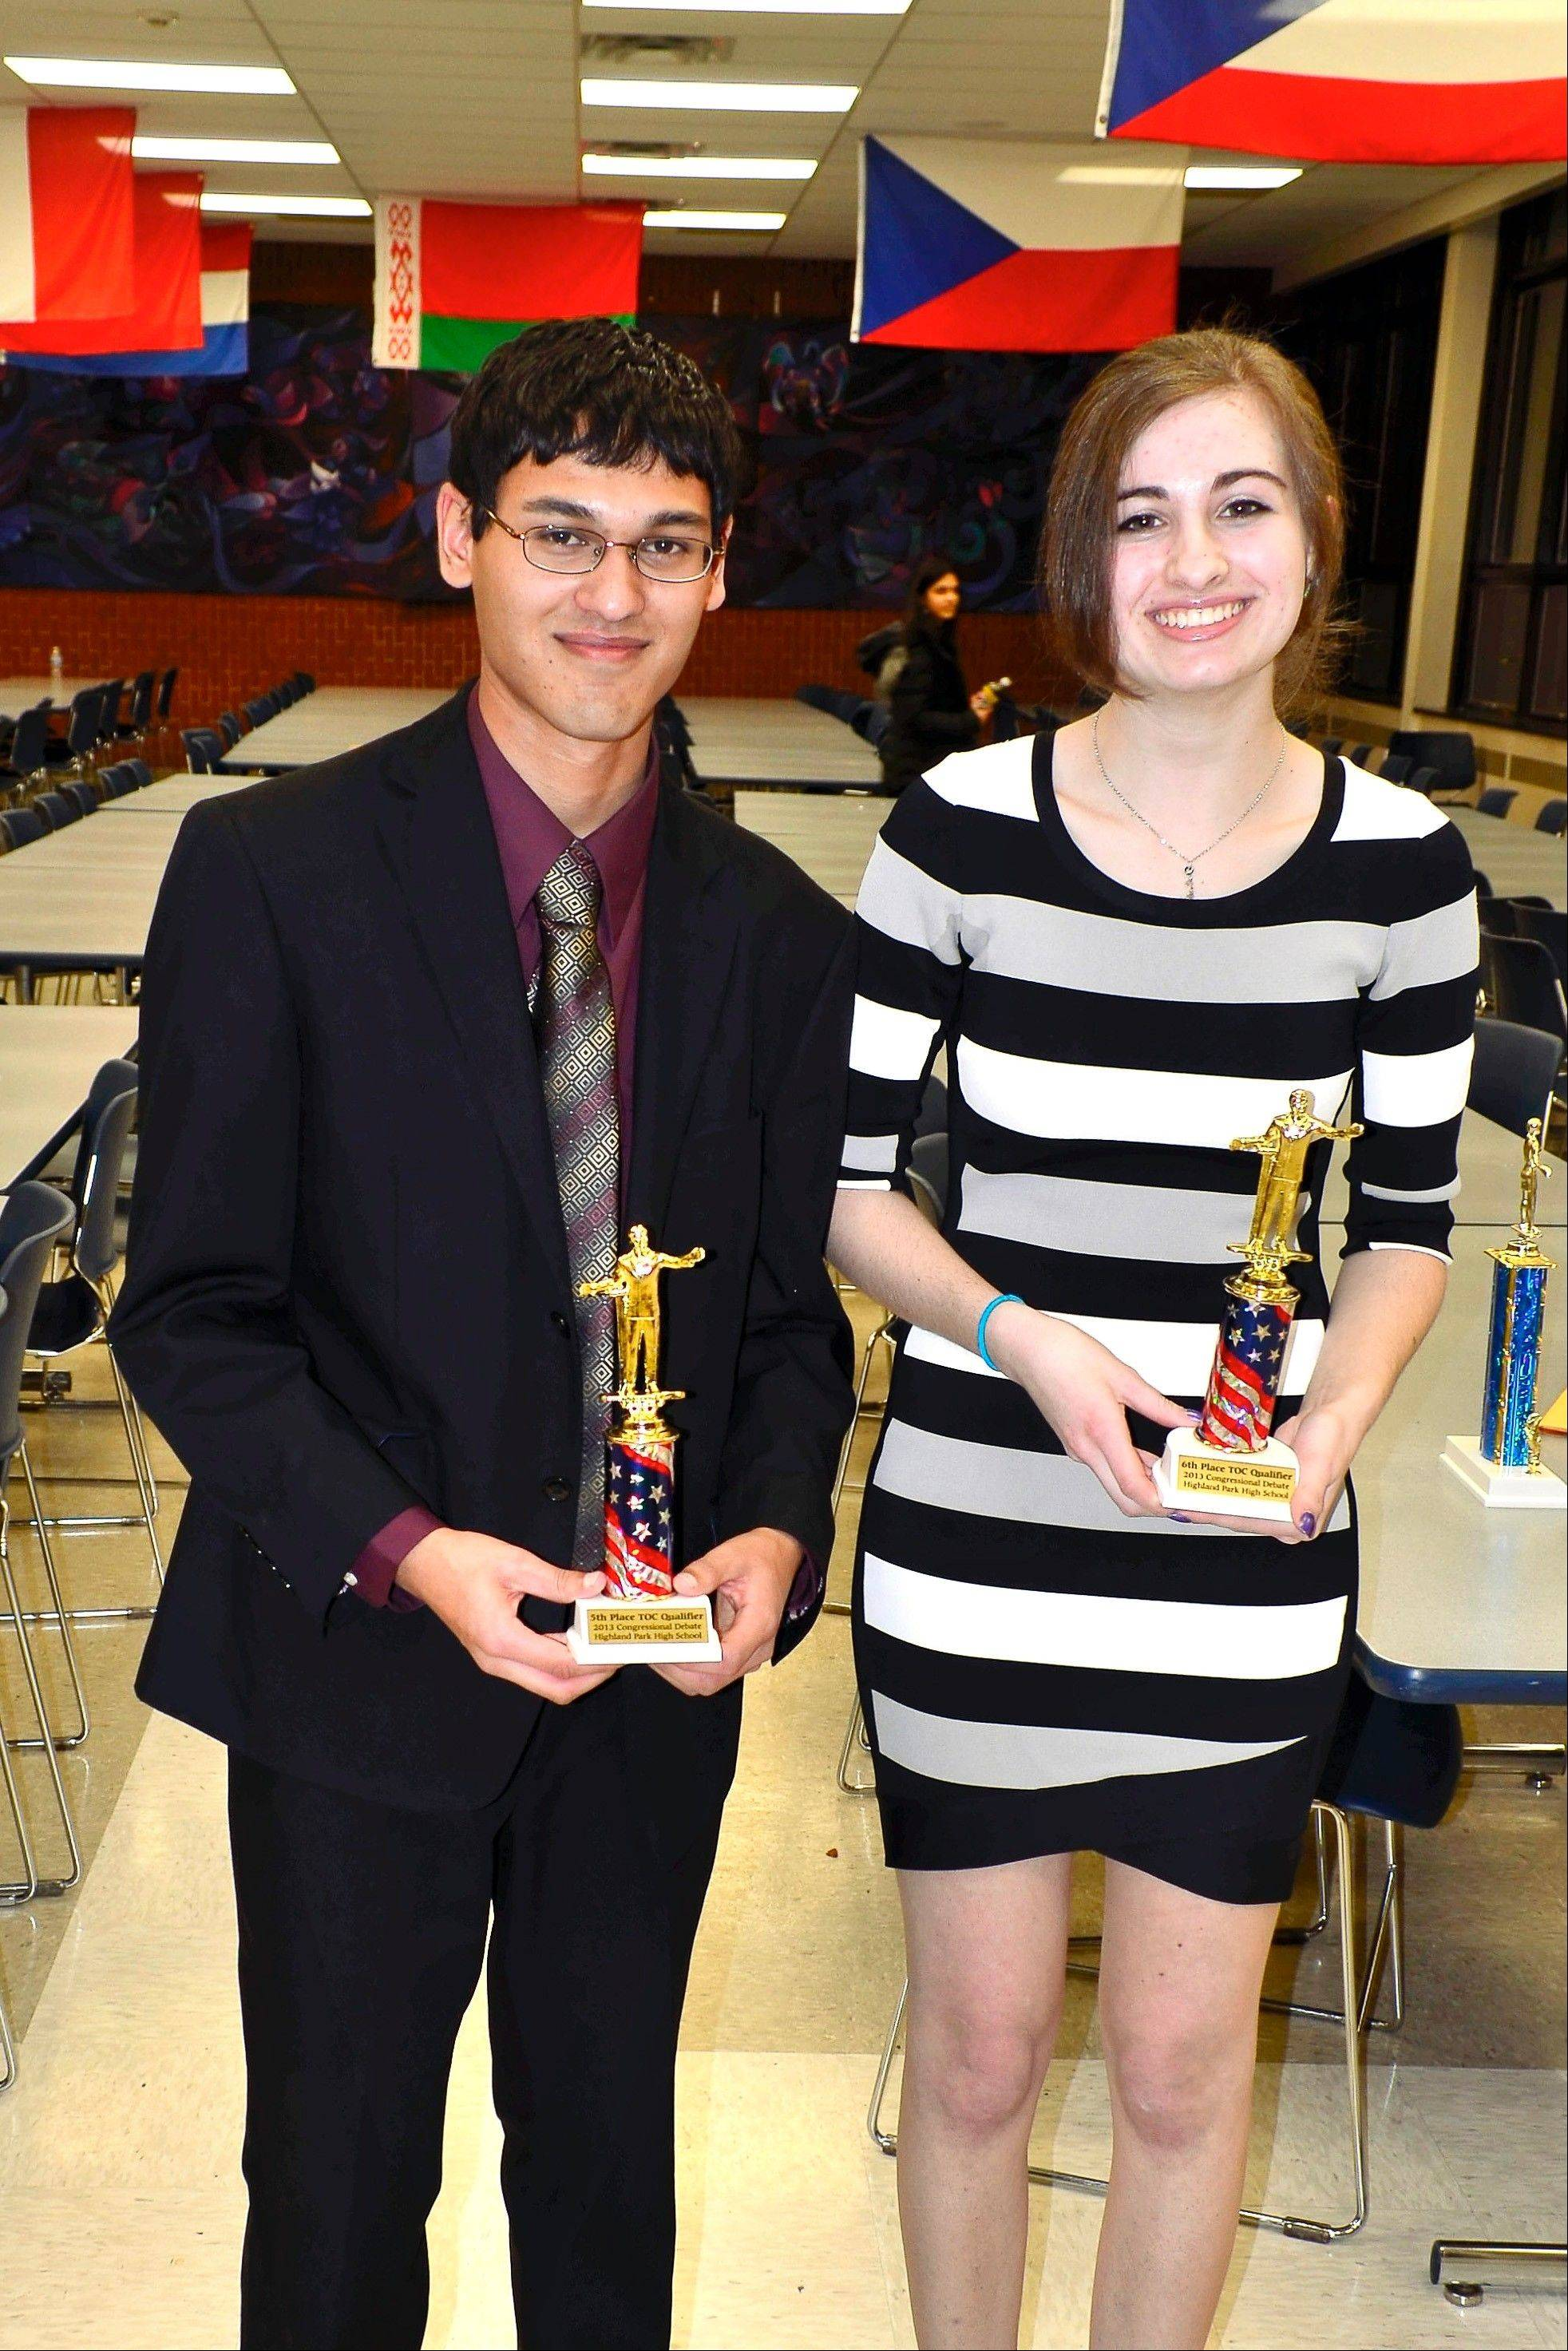 Hersey students Vivek Shah and Melanie Cohodes win top honors at TOC Qualifier at Highland Park High School.